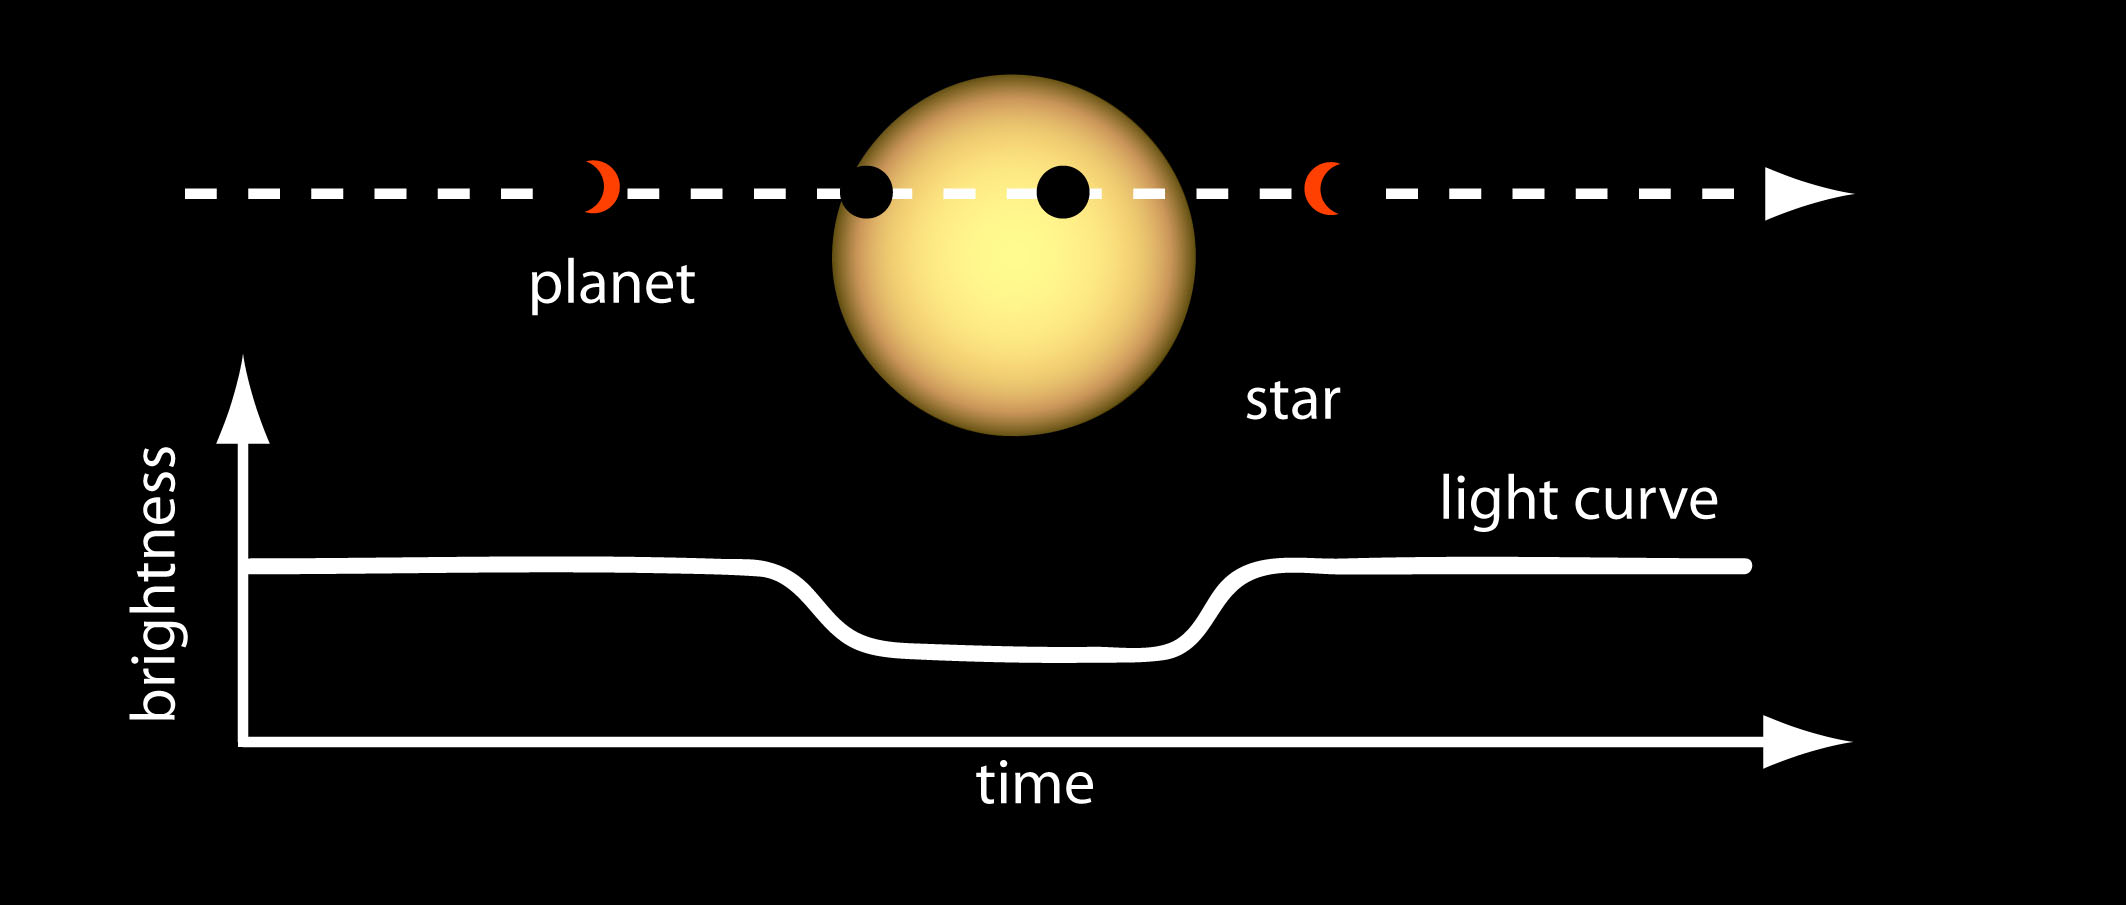 https://upload.wikimedia.org/wikipedia/commons/thumb/e/ef/Transit_Method_of_Detecting_Extrasolar_Planets.jpg/800px-Transit_Method_of_Detecting_Extrasolar_Planets.jpg